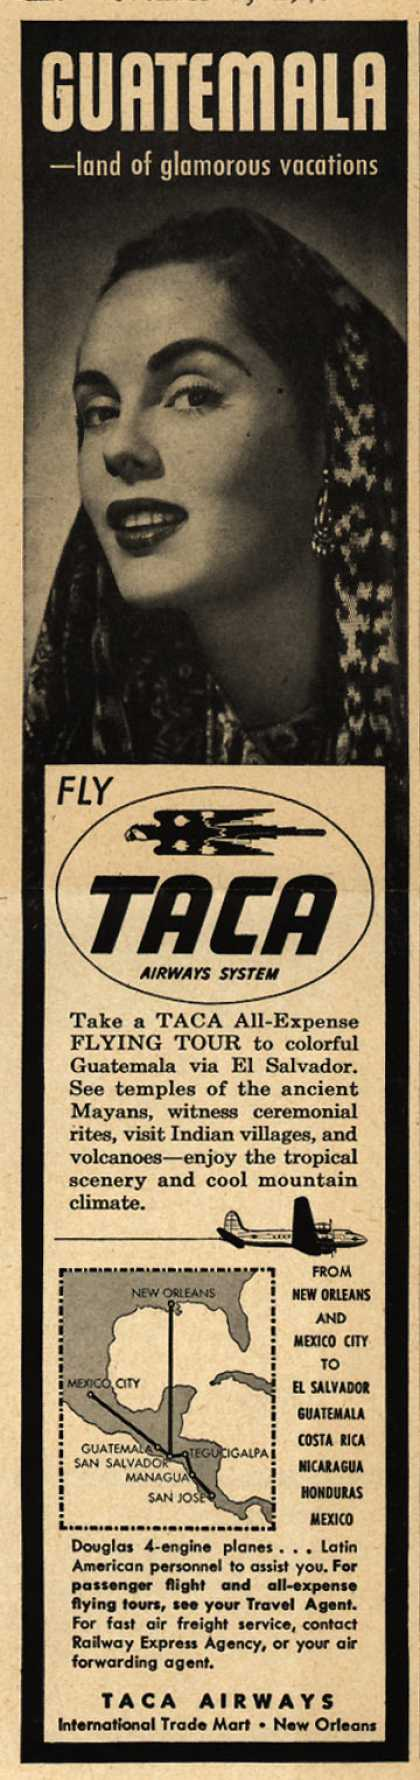 TACA Airways System's Guatemala – Guatemala -land of glamorous vacations (1948)